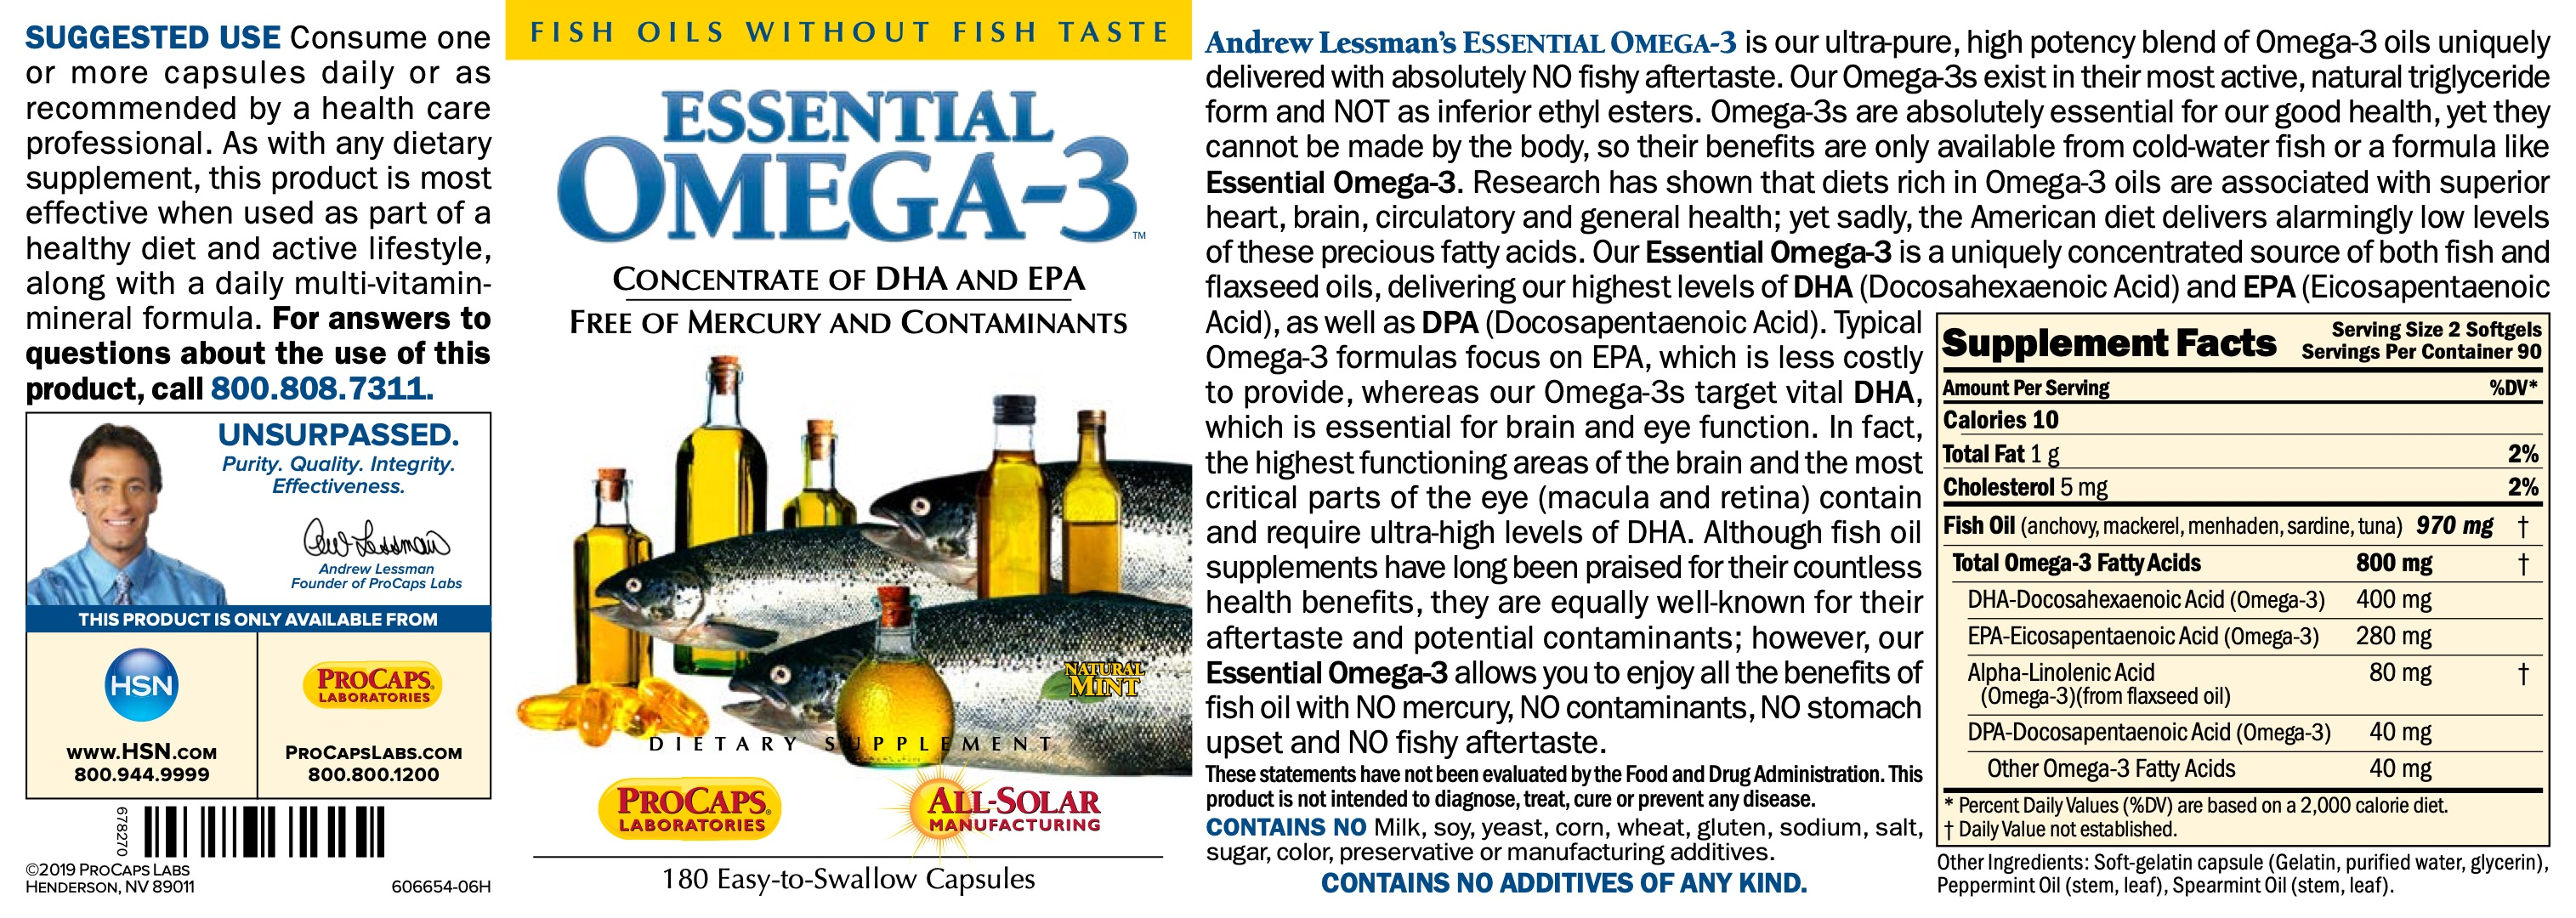 Essential-Omega-3-No-Fishy-Taste-Mint-Softgels-Cardiovascular-Health